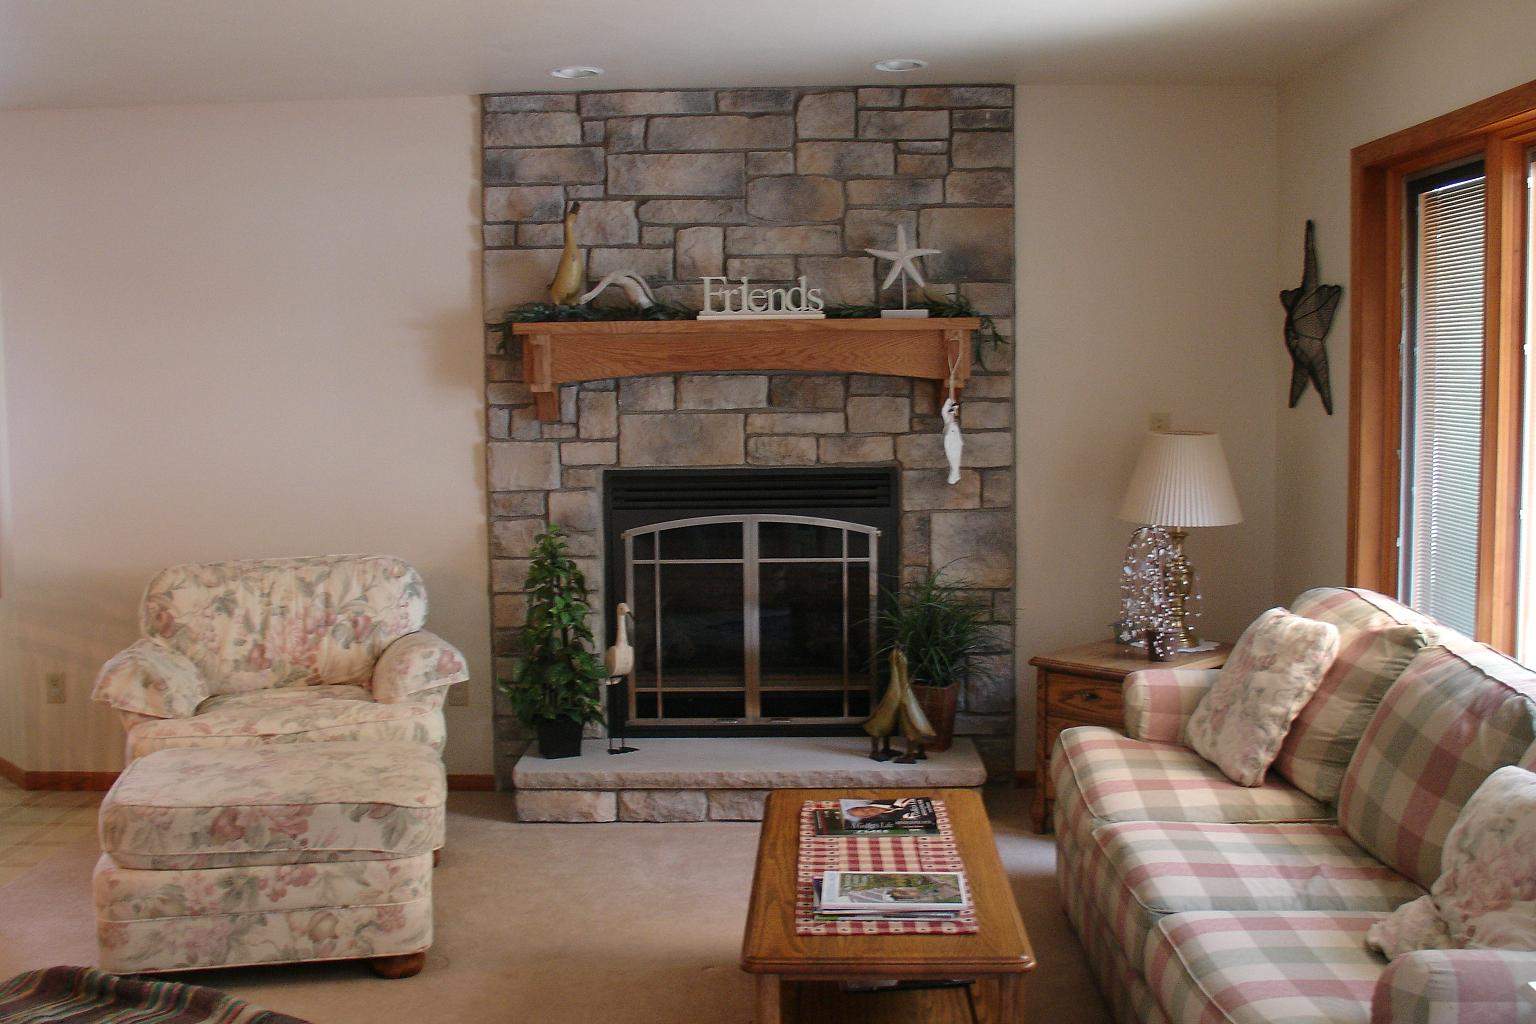 Stylish Family Room With Sofa also Wooden Table and Fireplace Stone Veneer